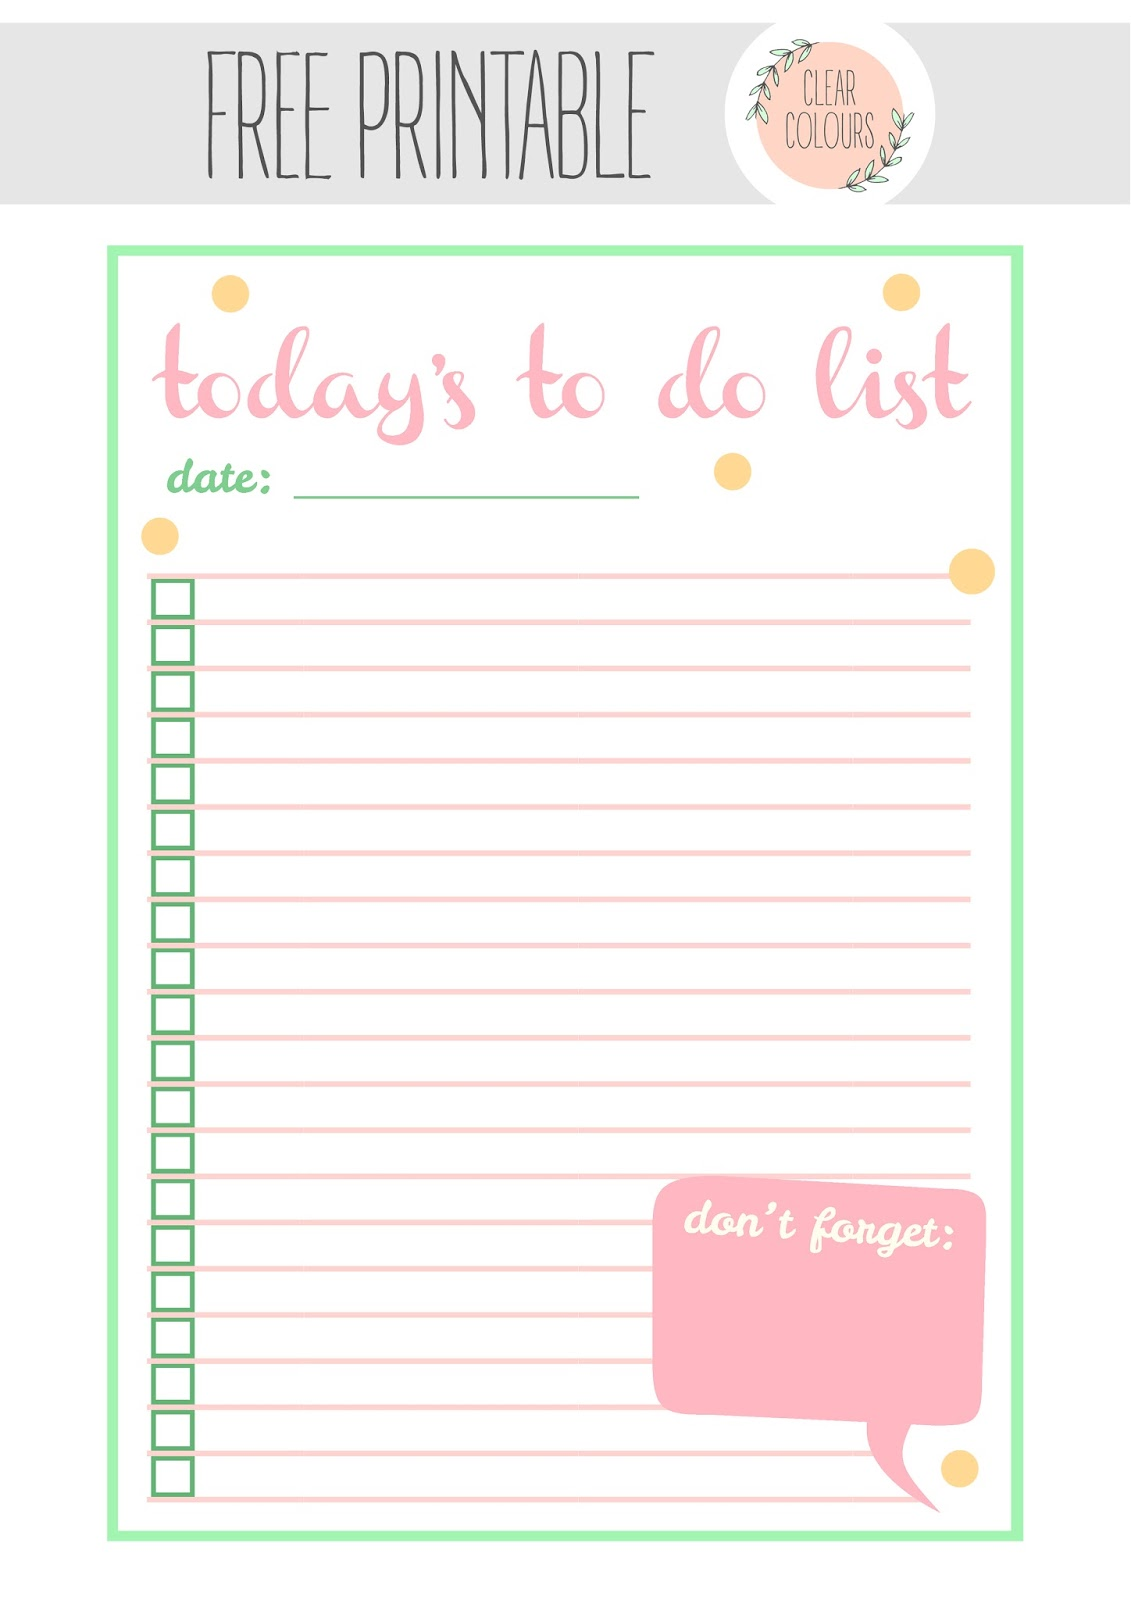 Clear colours free printables to do list for Diy to do list template